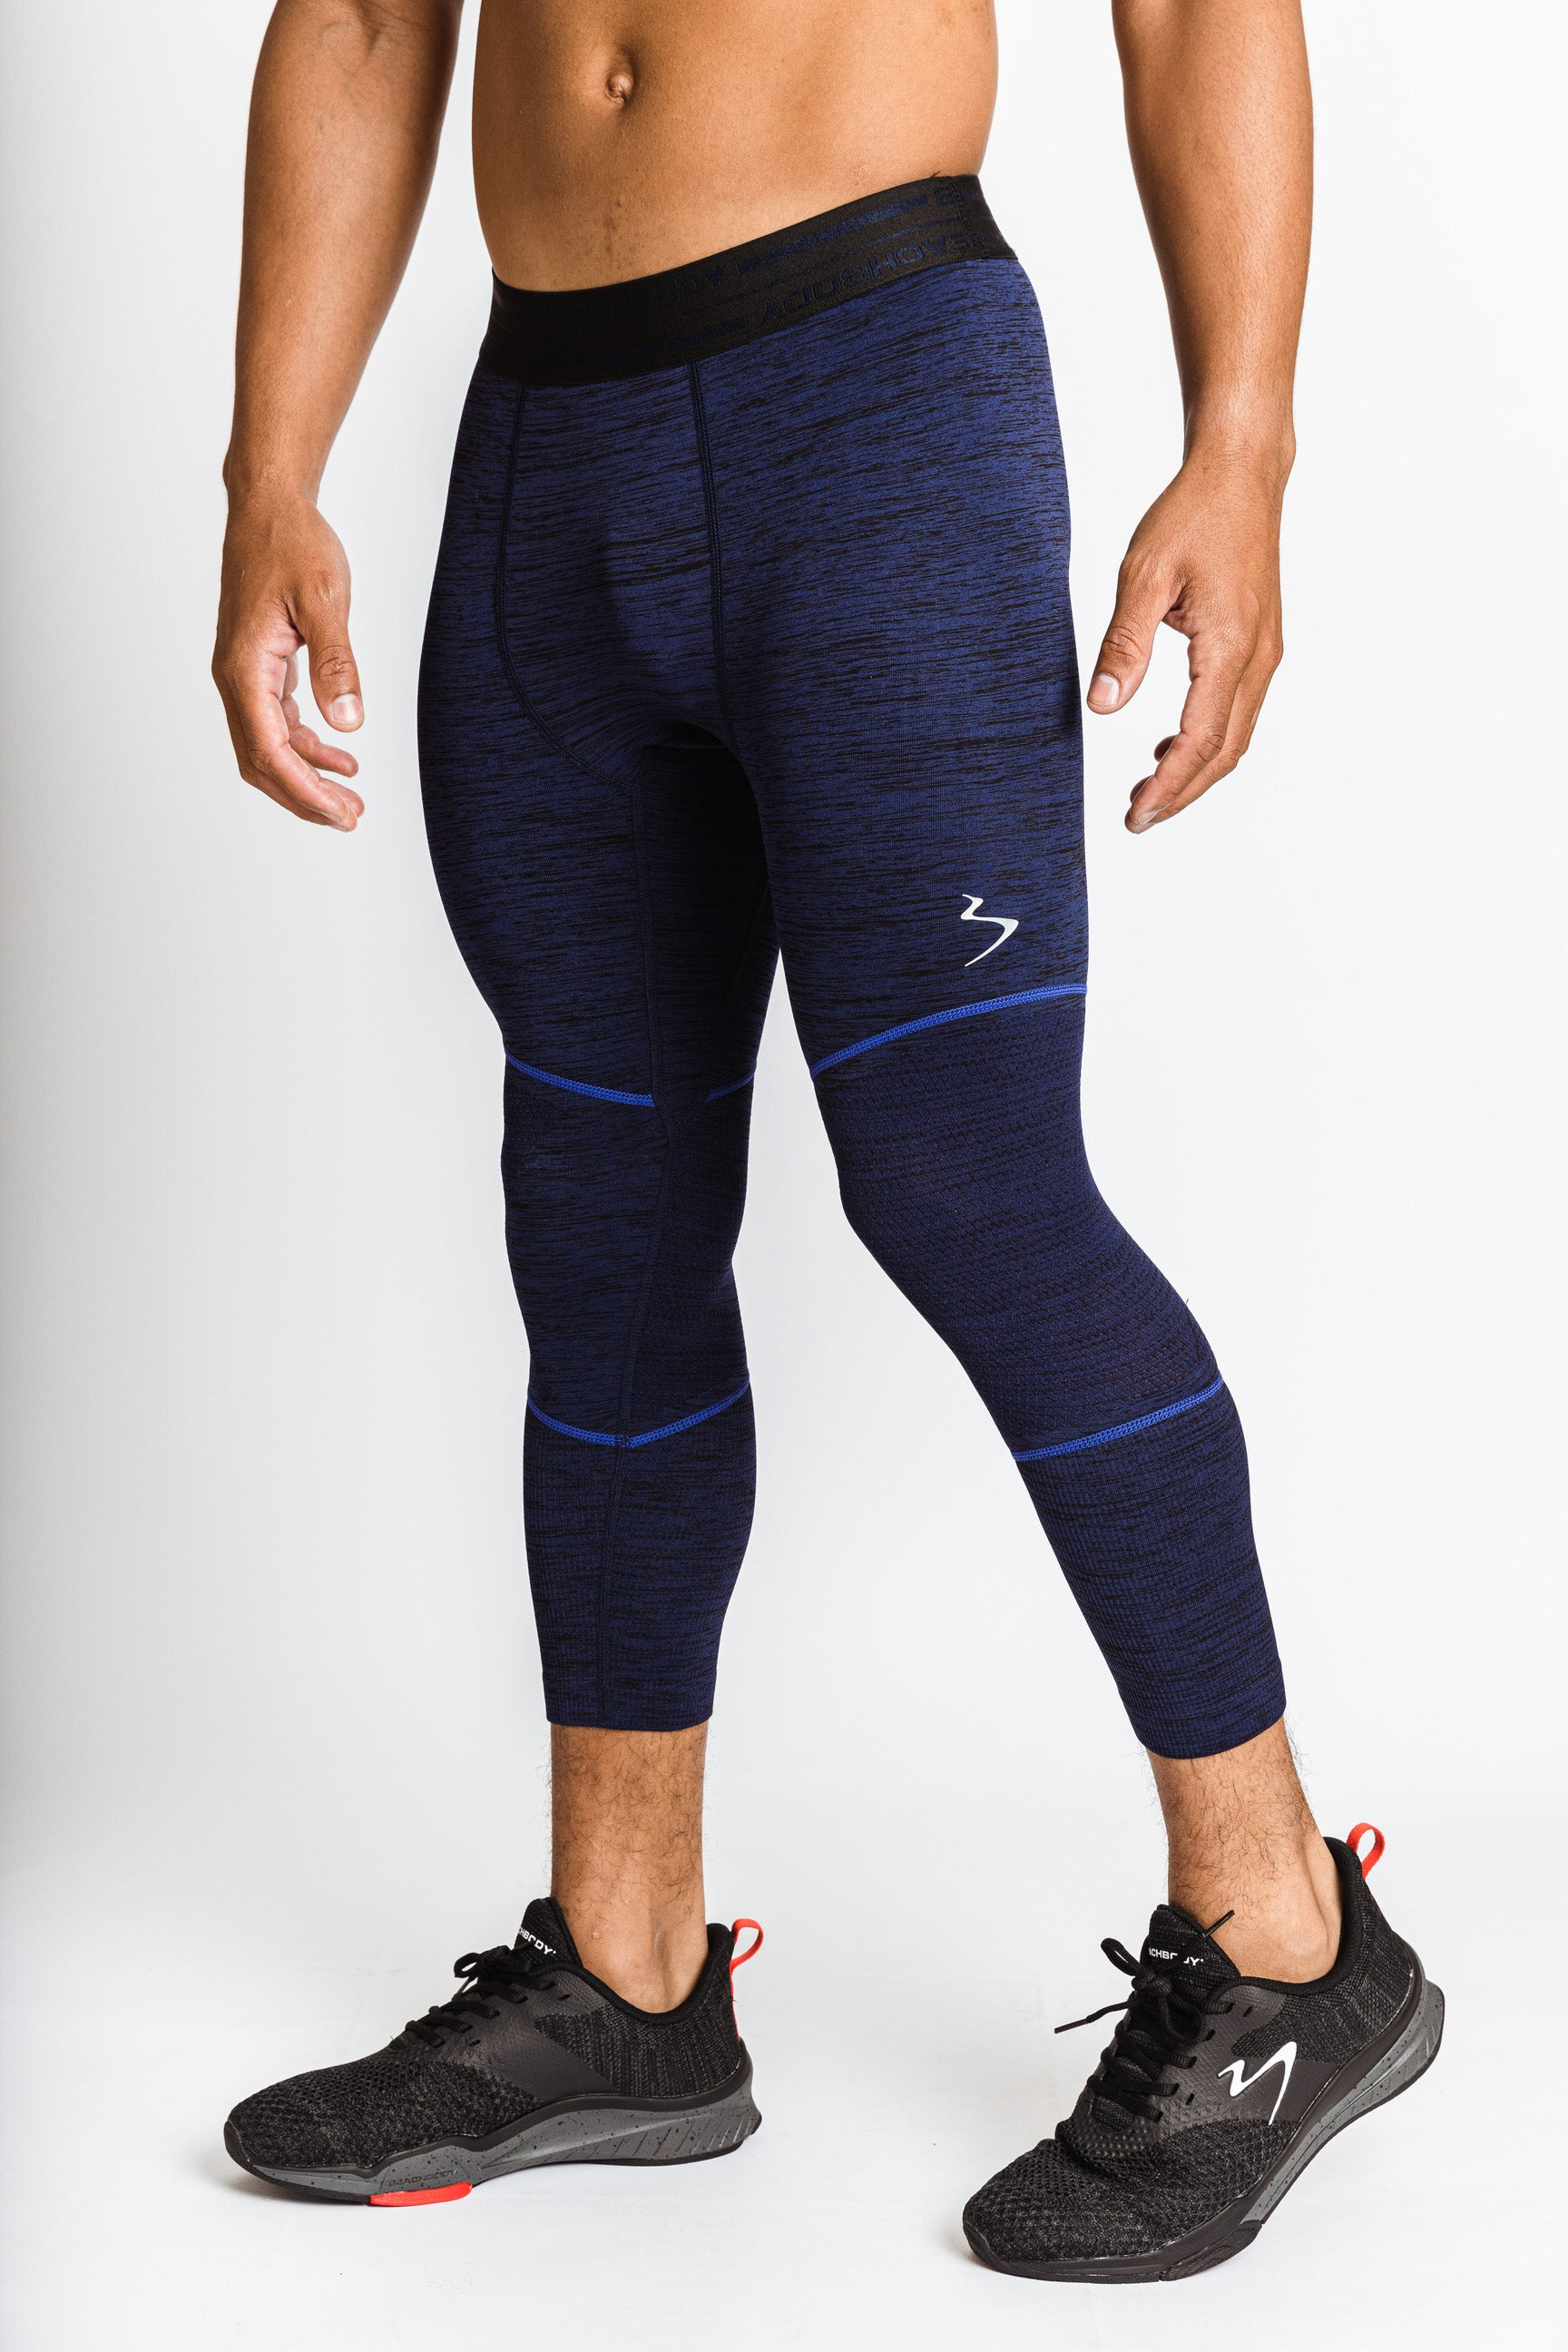 Men's Seamless Cropped Tight